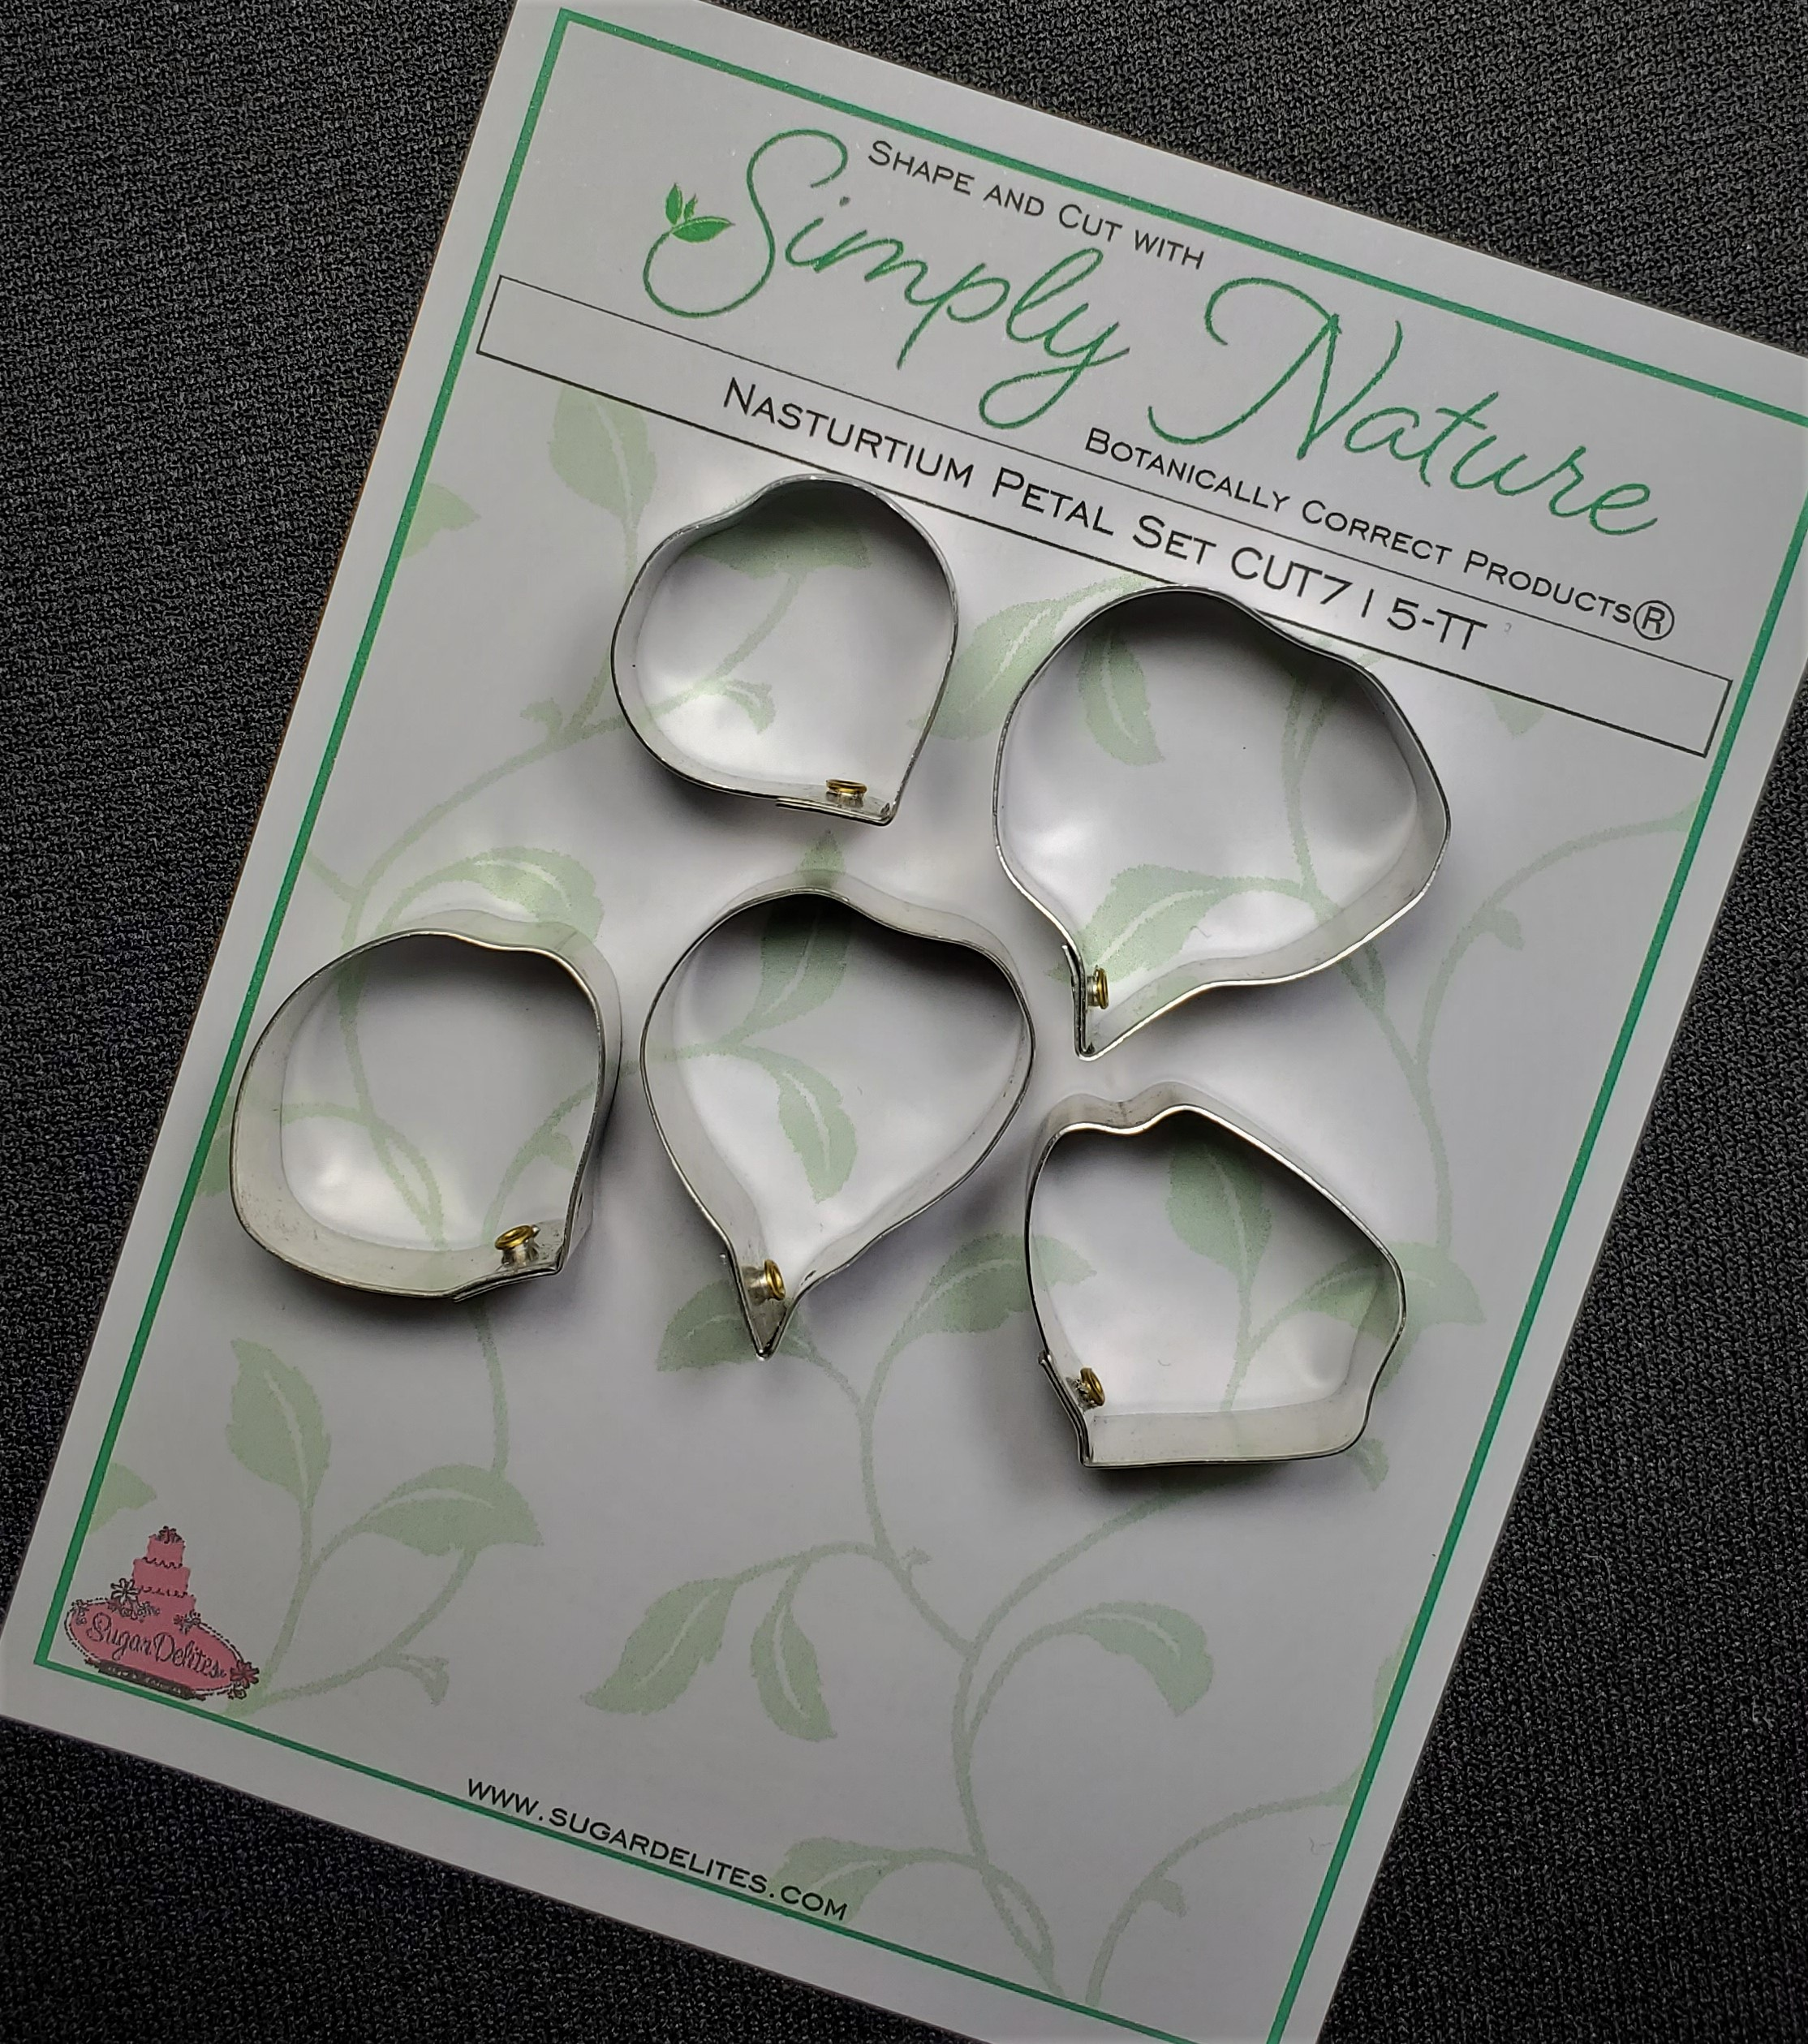 Nasturtium Petal Cutter Set By Simply Nature Botanically Correct Products®